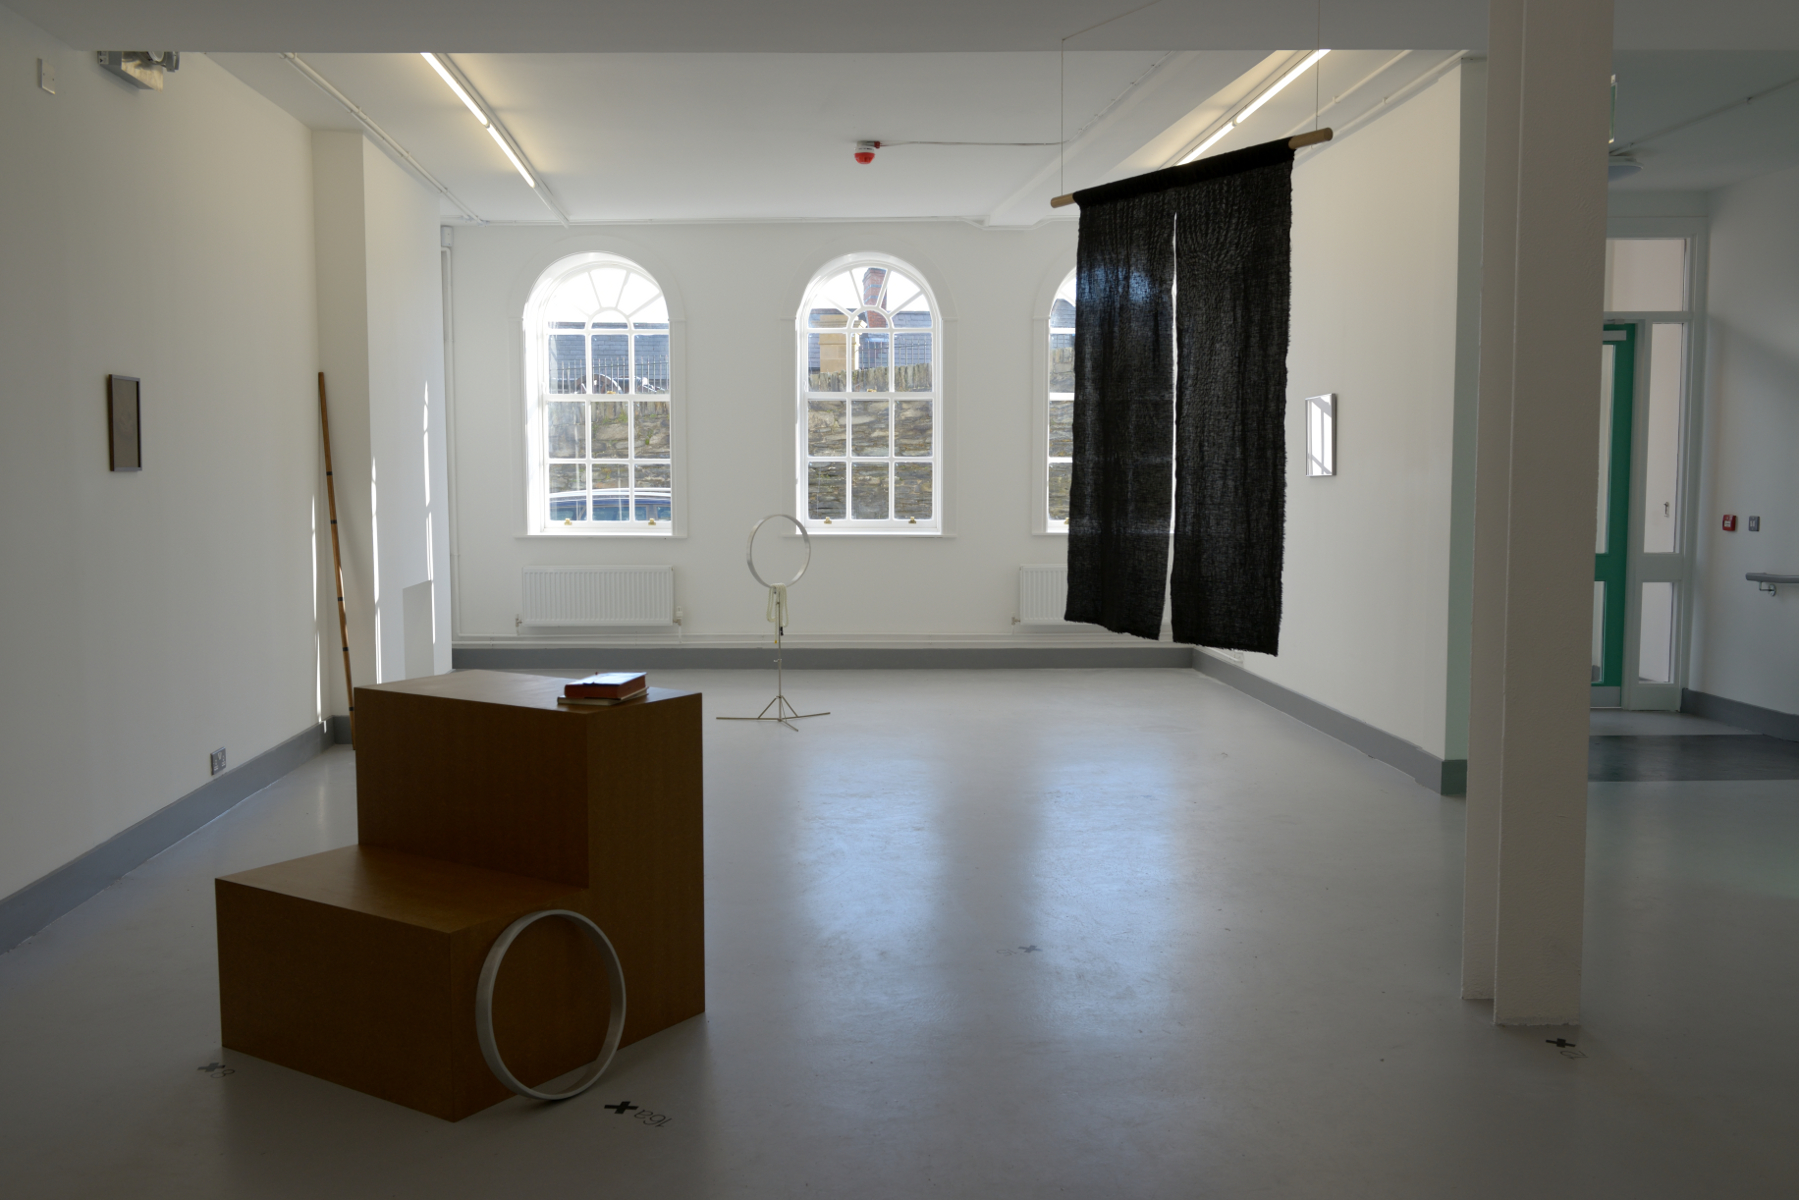 Contemporary art in Derry/Londonderry - An overview